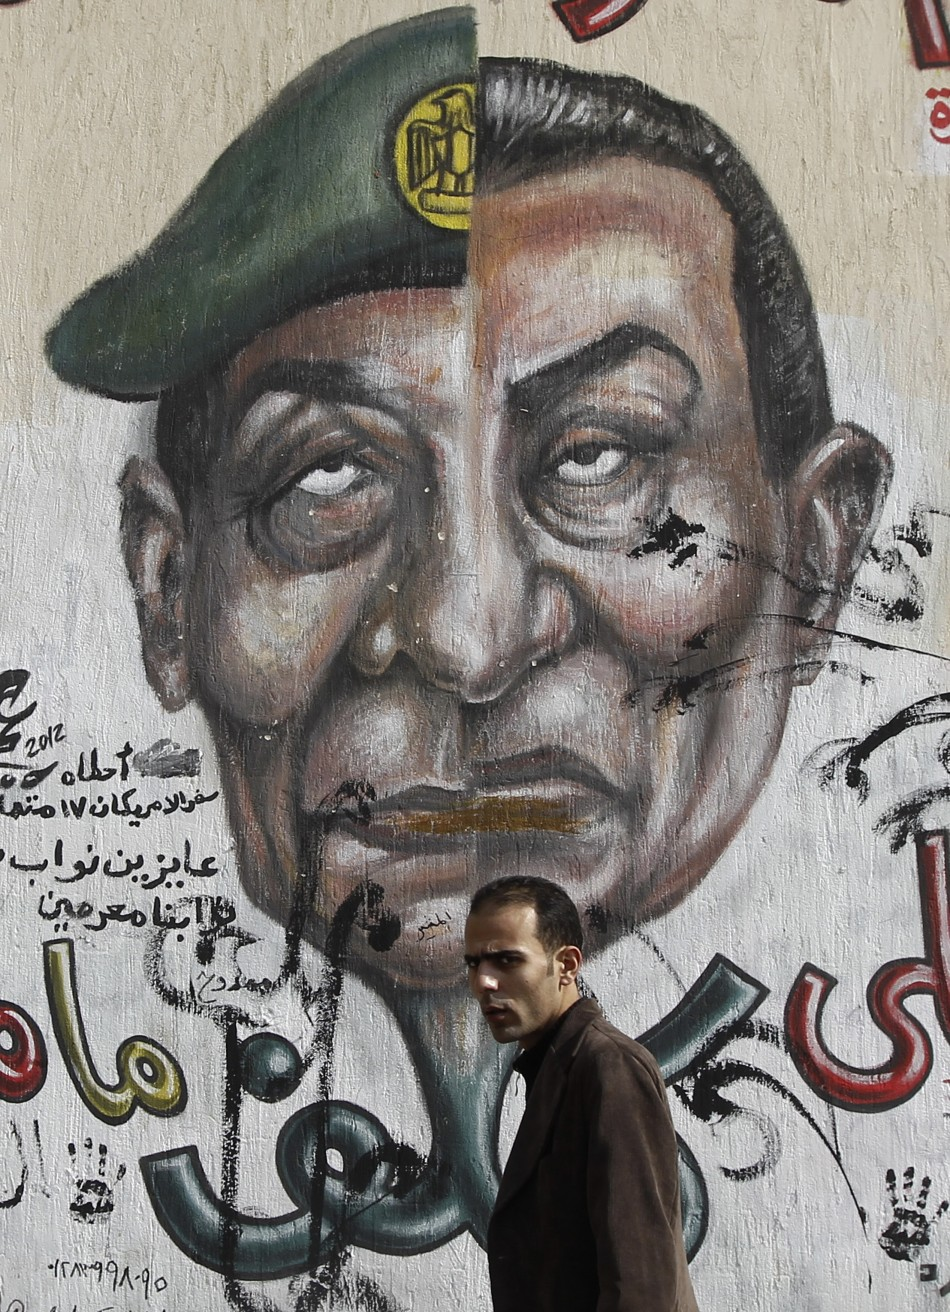 Egyptian man walks past graffiti depicting the faces of former President Mubarak and Field Marshal Tantawi in Cairo